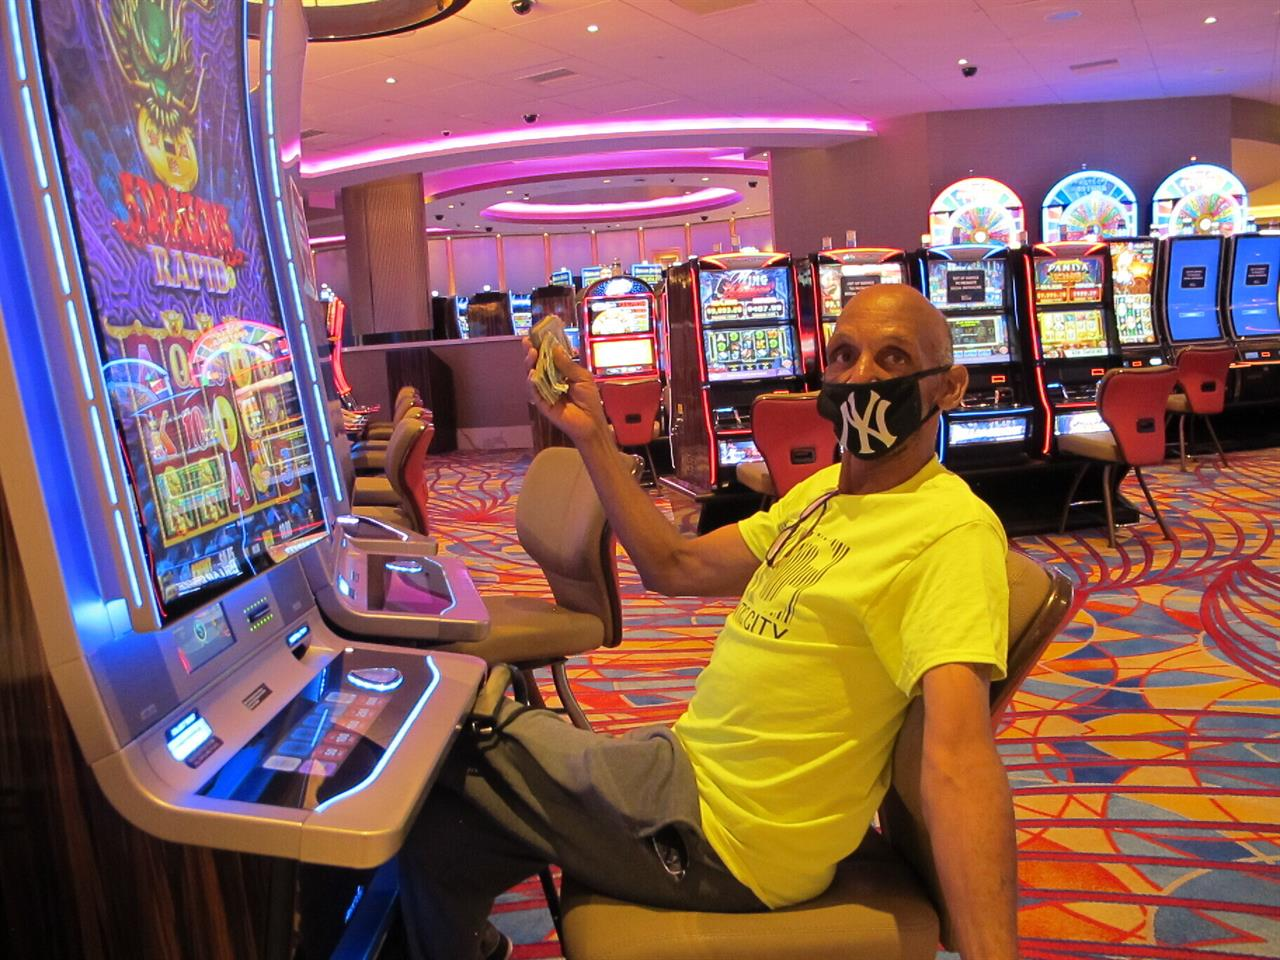 NJ casinos, tracks win $264M in July after virus reopening